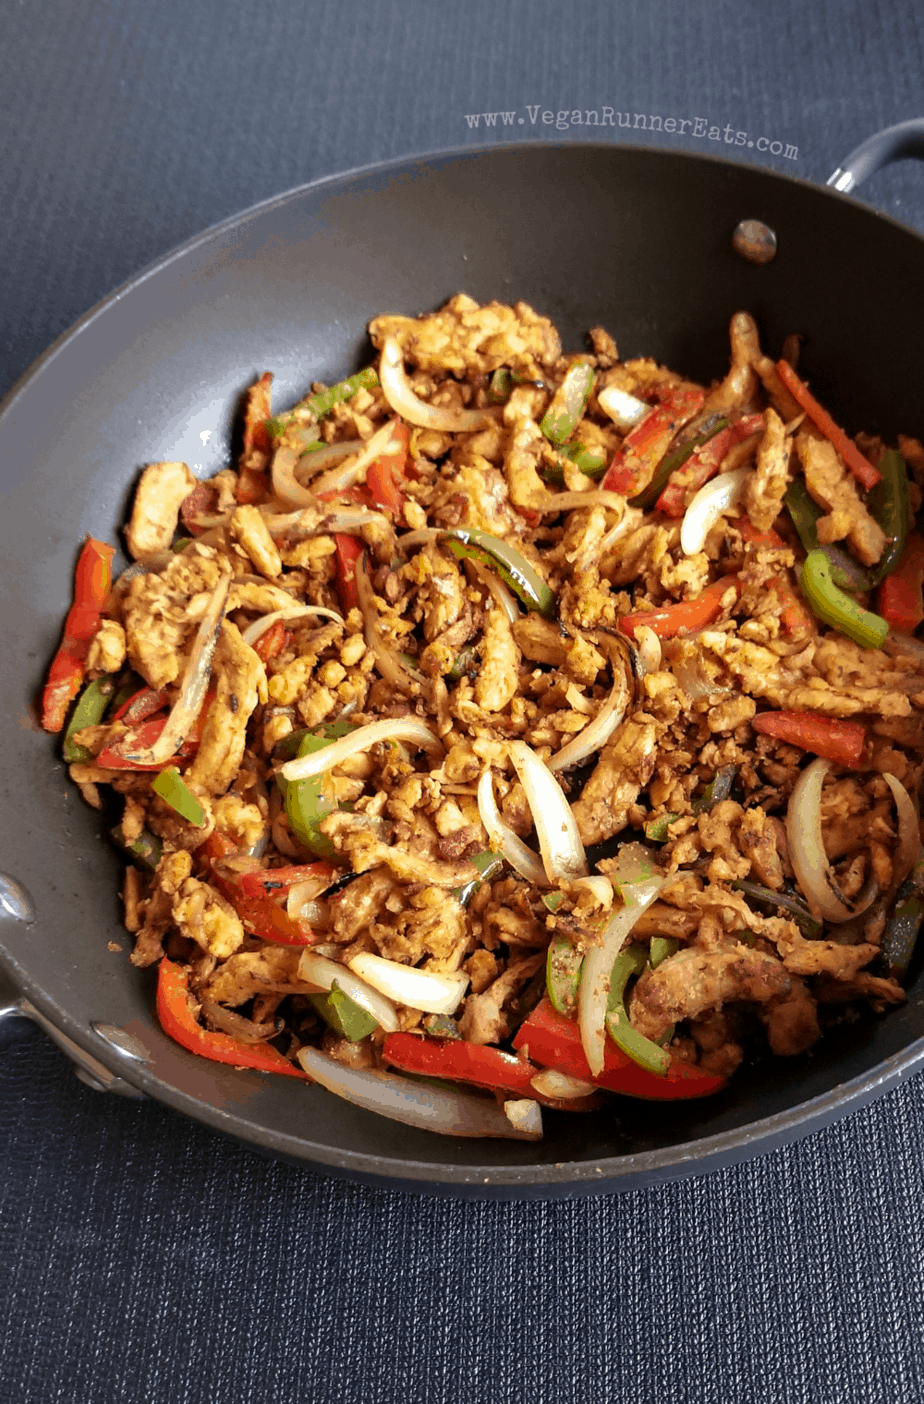 Vegan fajita filling recipe with soy curls